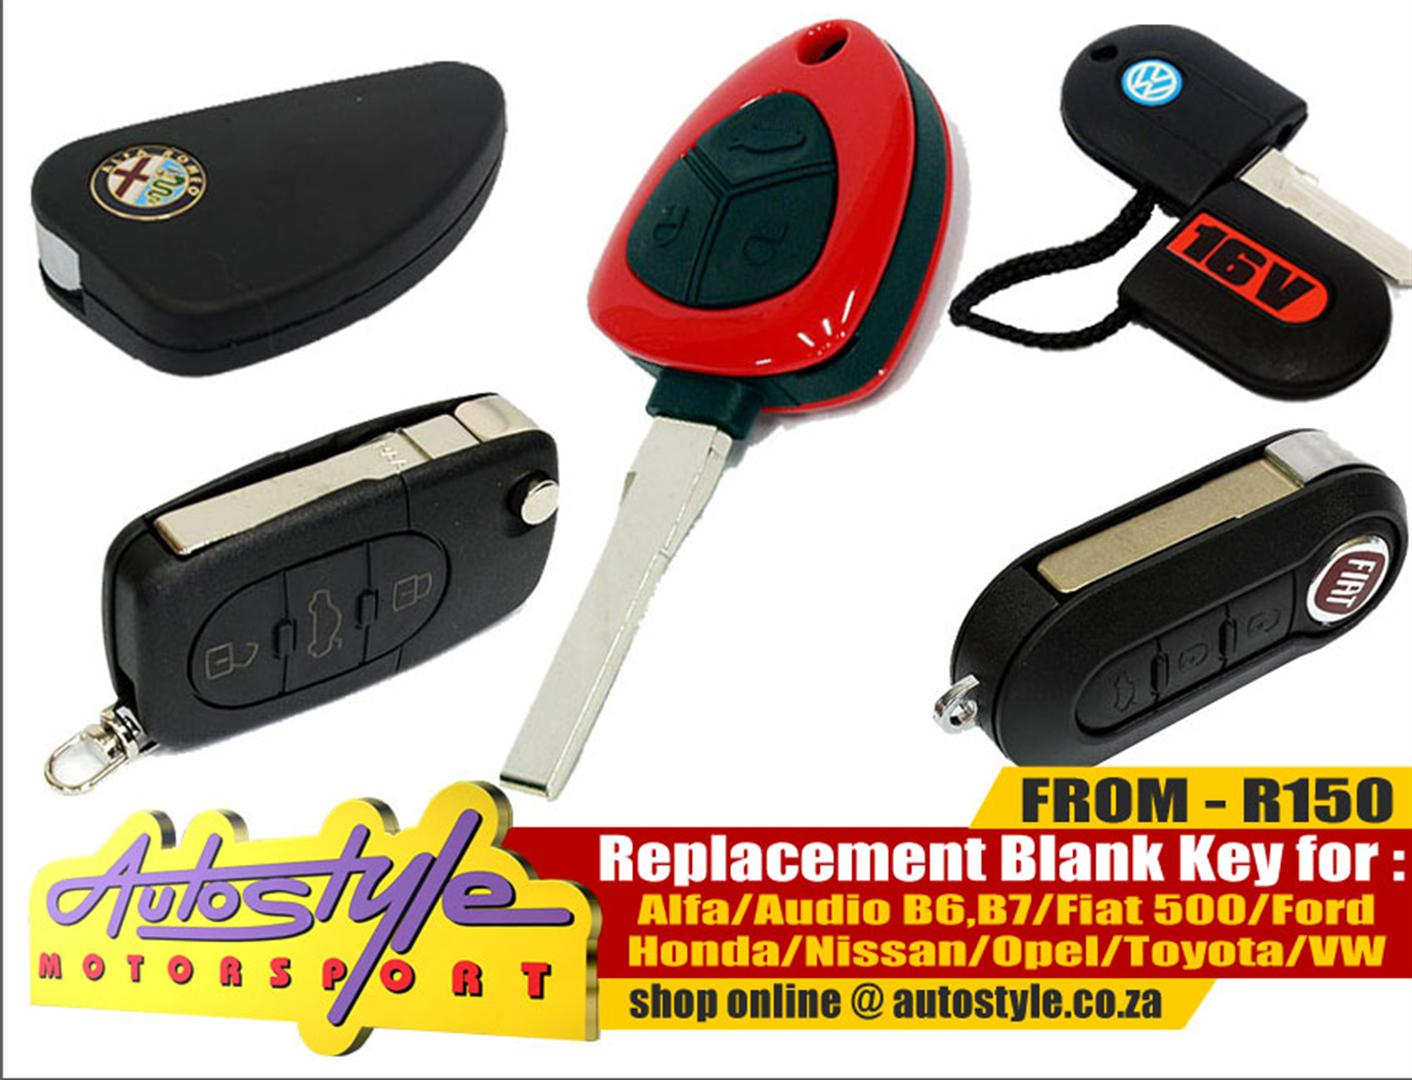 Replacement Brand New Blank Keys, Spare Keys available